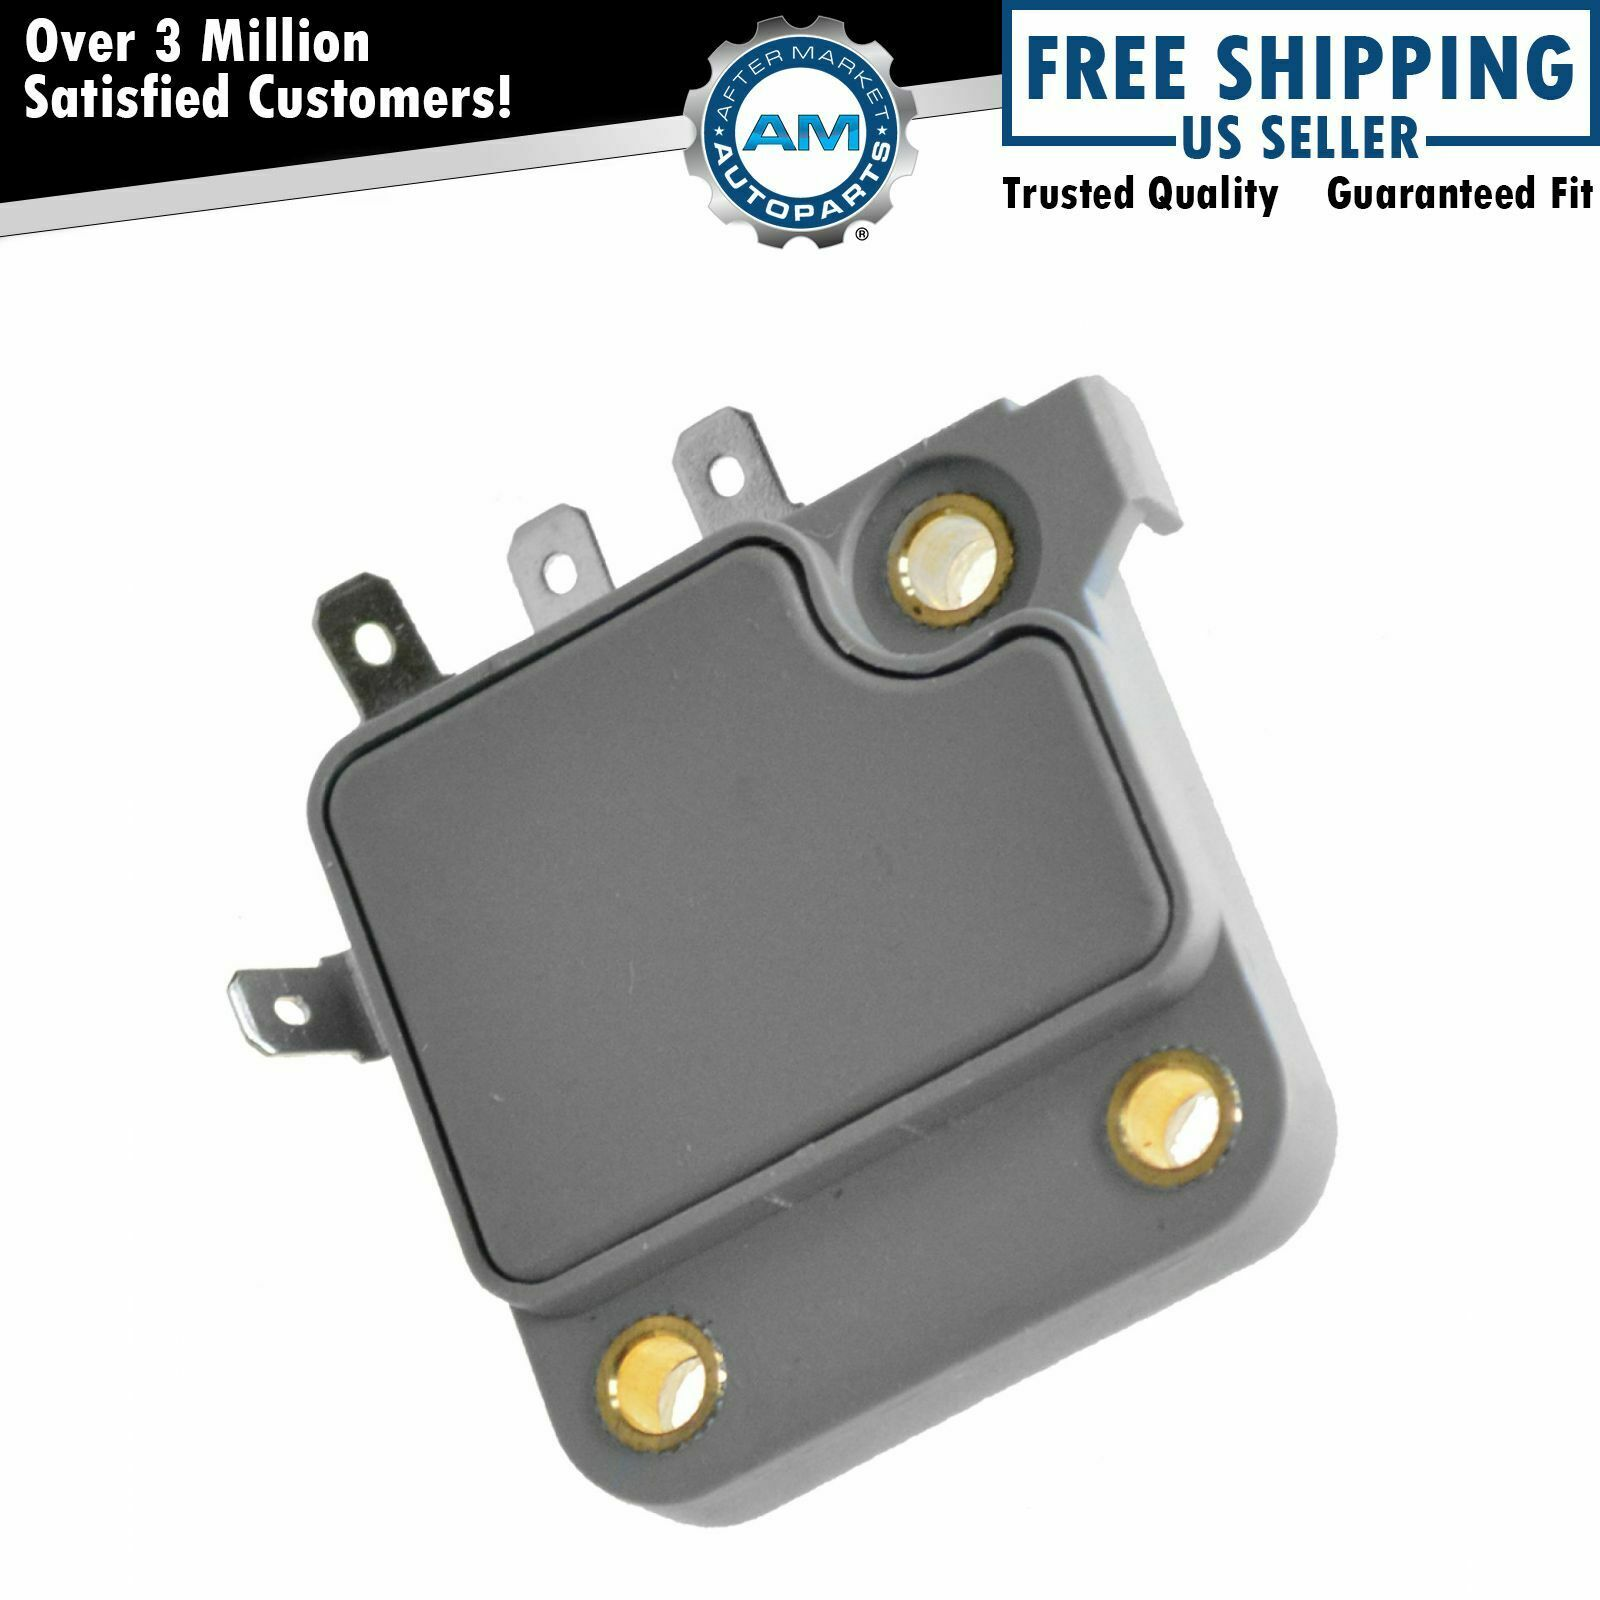 Ignition Spark Control Module Ignitor For Honda Accord Civic Prelude 1992 Coil 1 Of 2only 5 Available